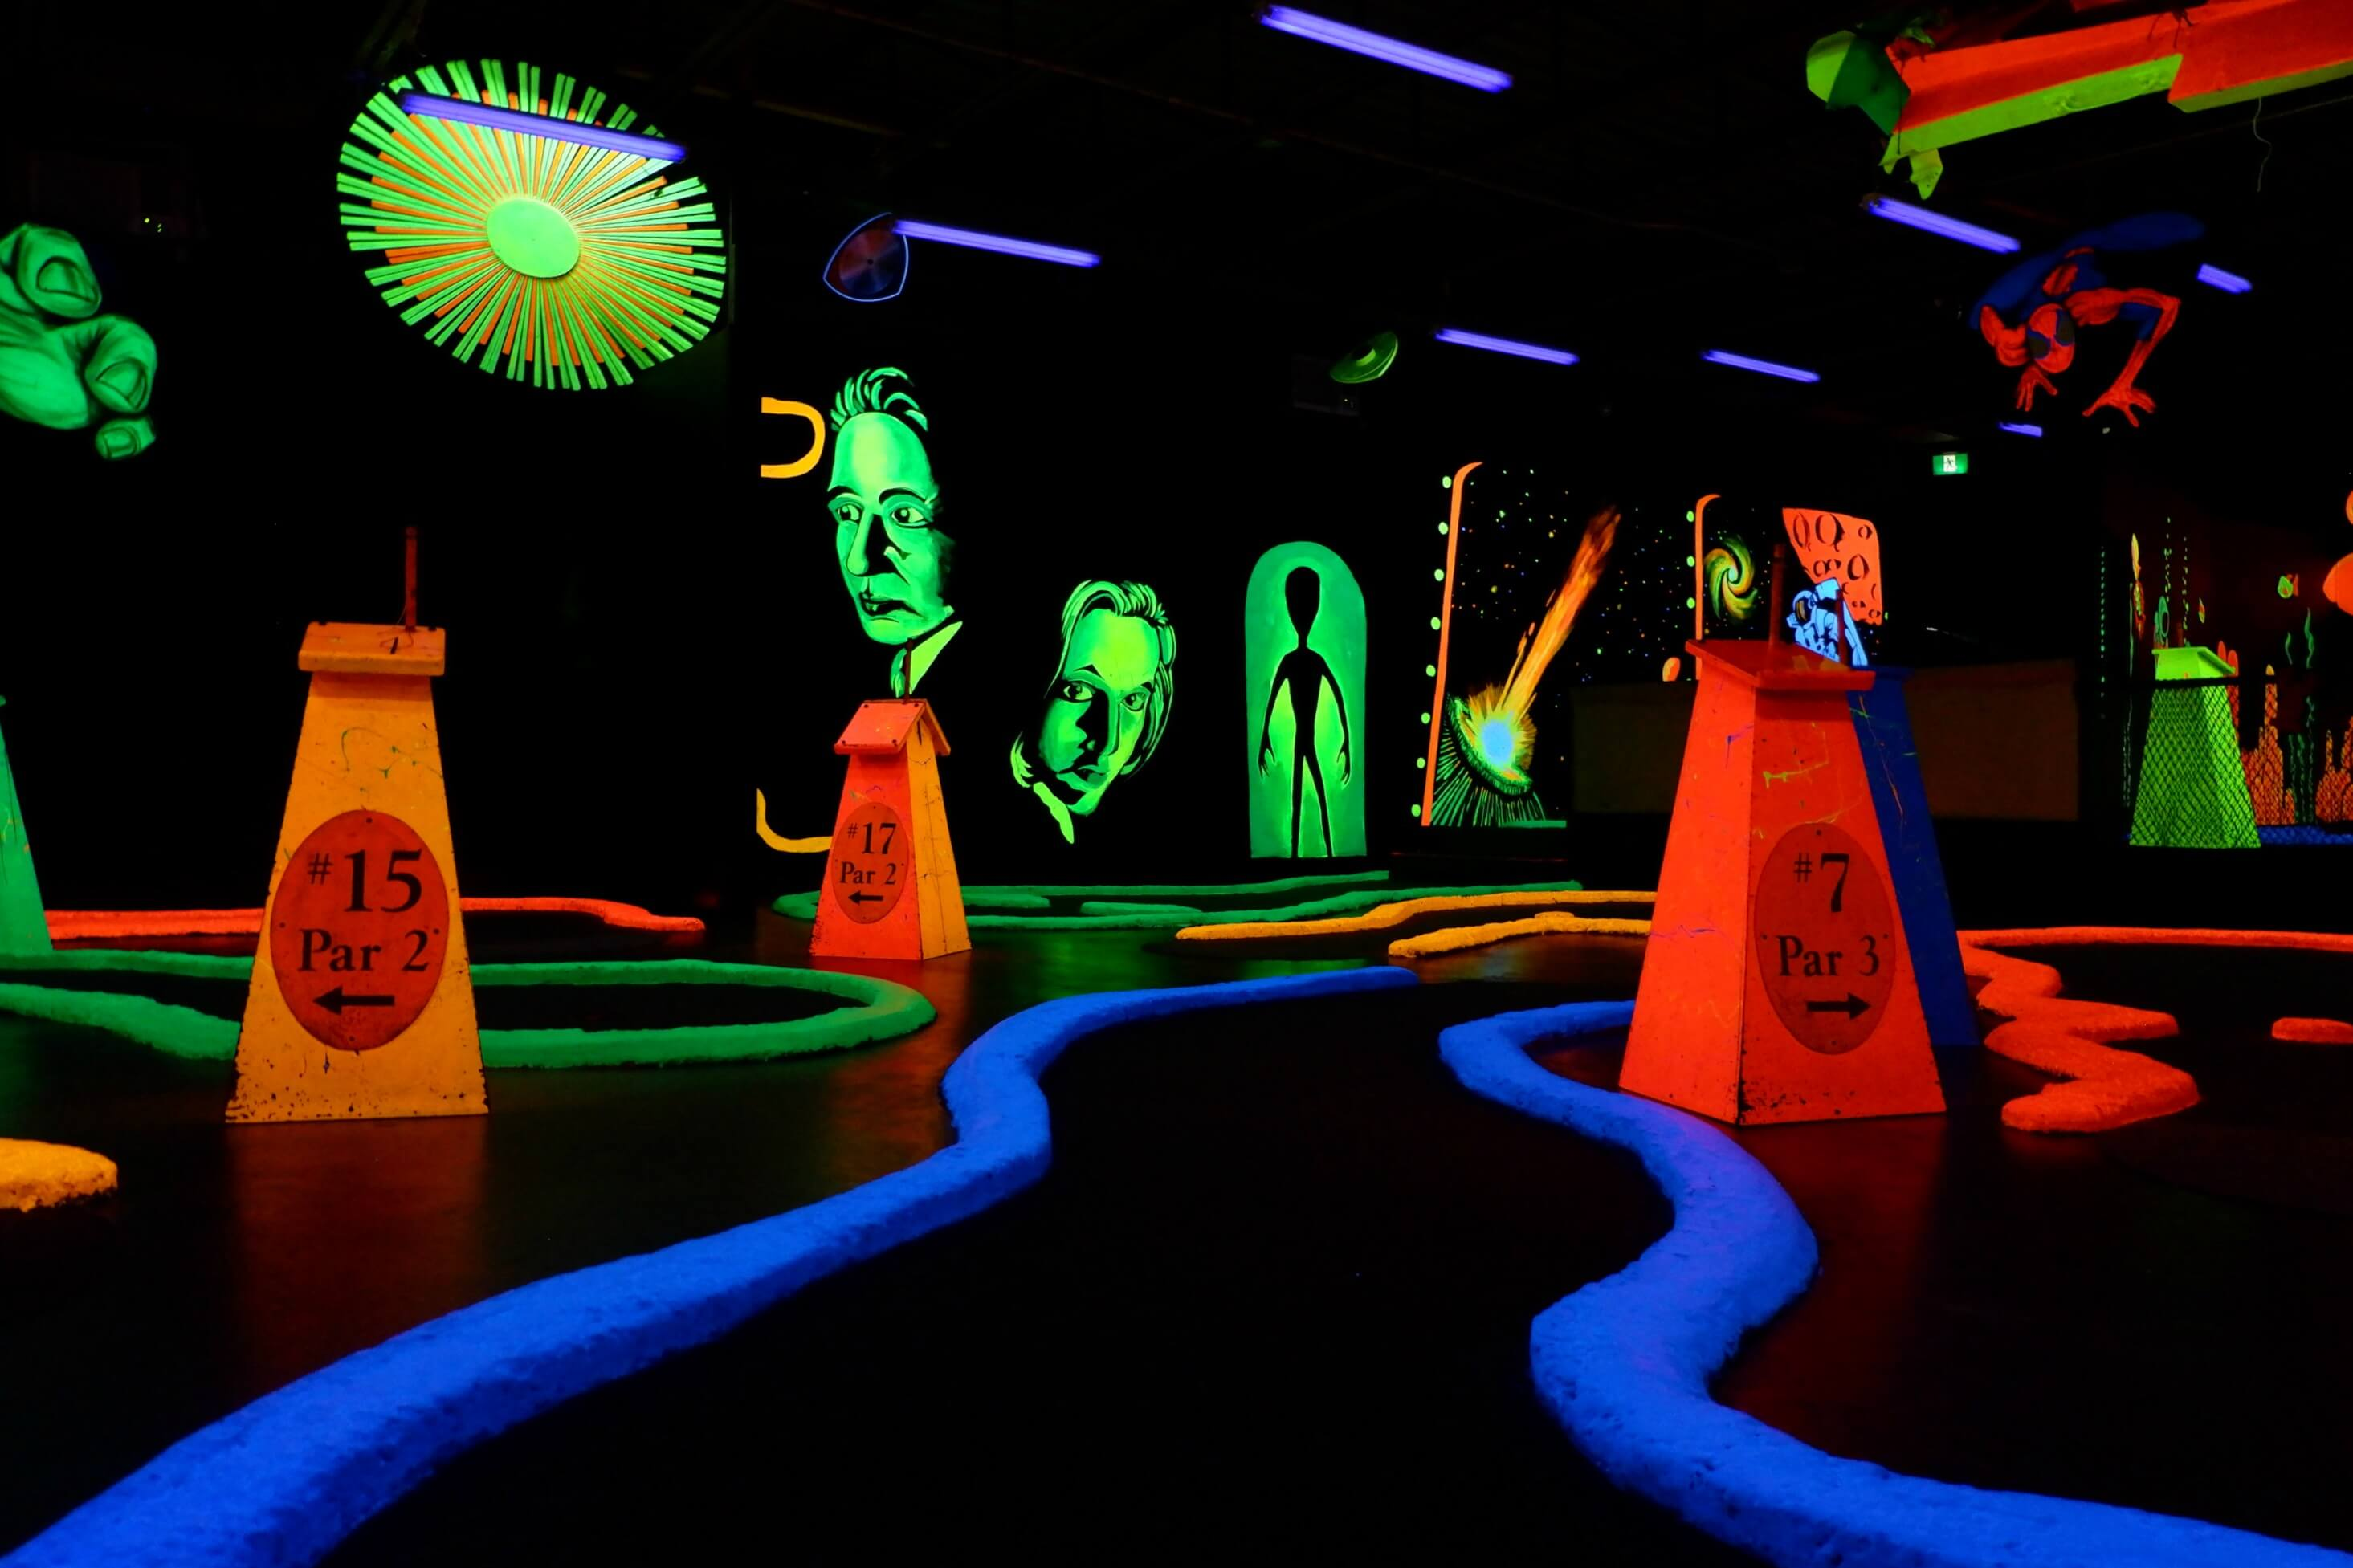 cavendish rainy day ideas kids family fun indoor black light golf